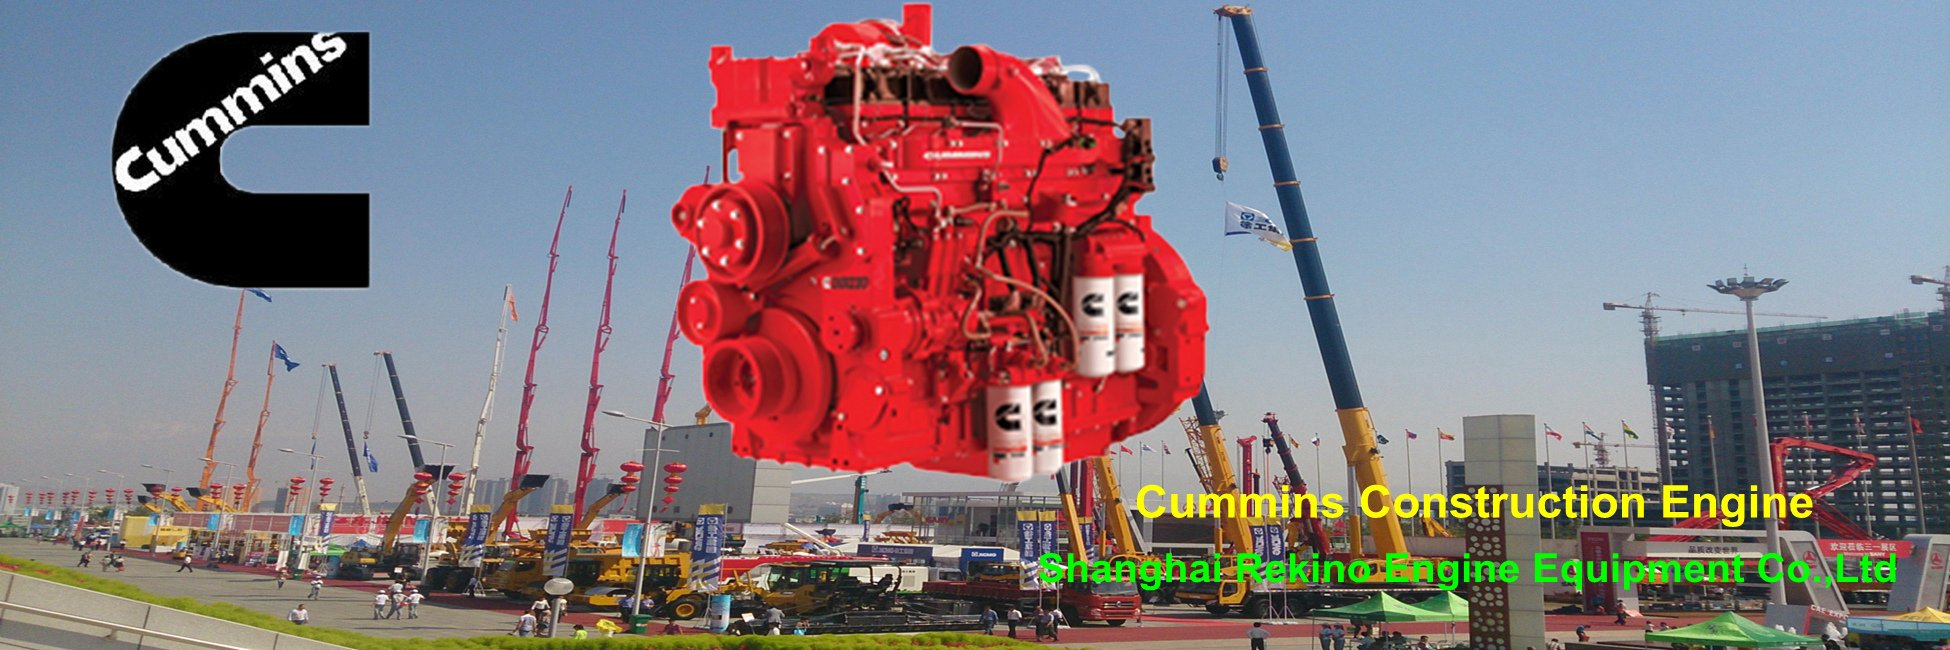 Cummins construction engines banner